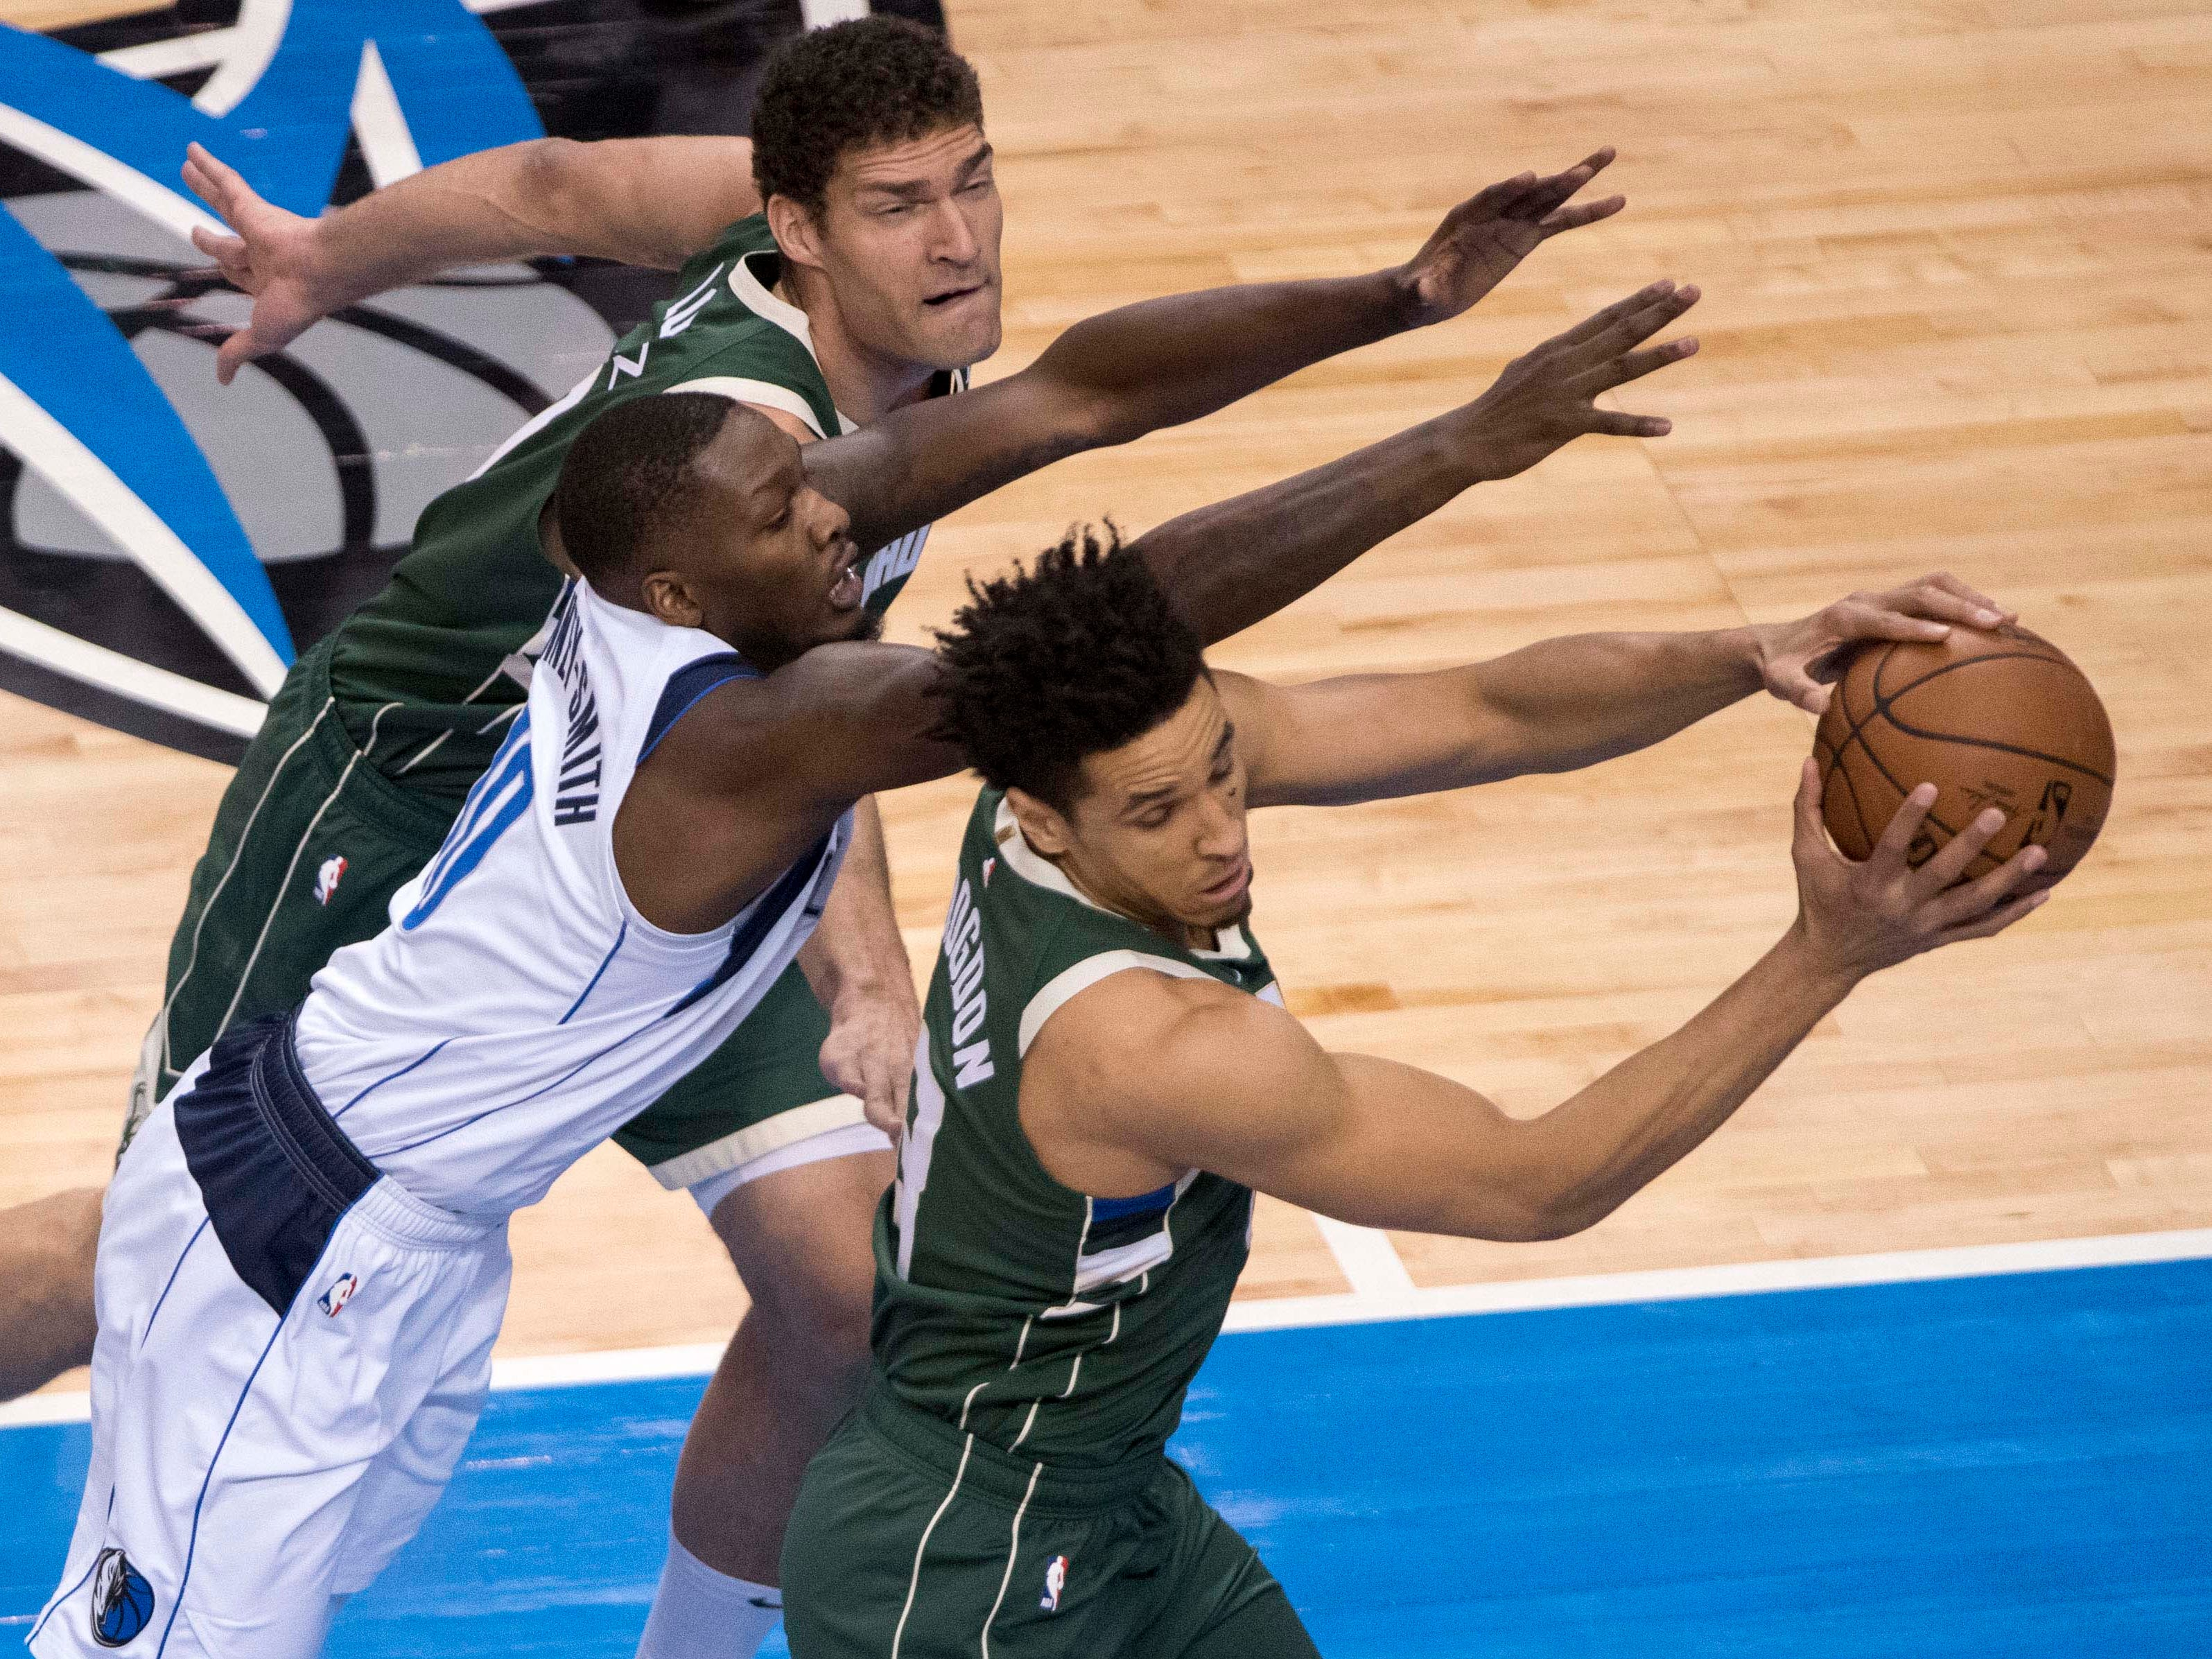 Bucks guard Malcolm Brogdon snares a rebound before Mavericks forward Dorian Finney-Smith can get to it during the first quarter Friday night.